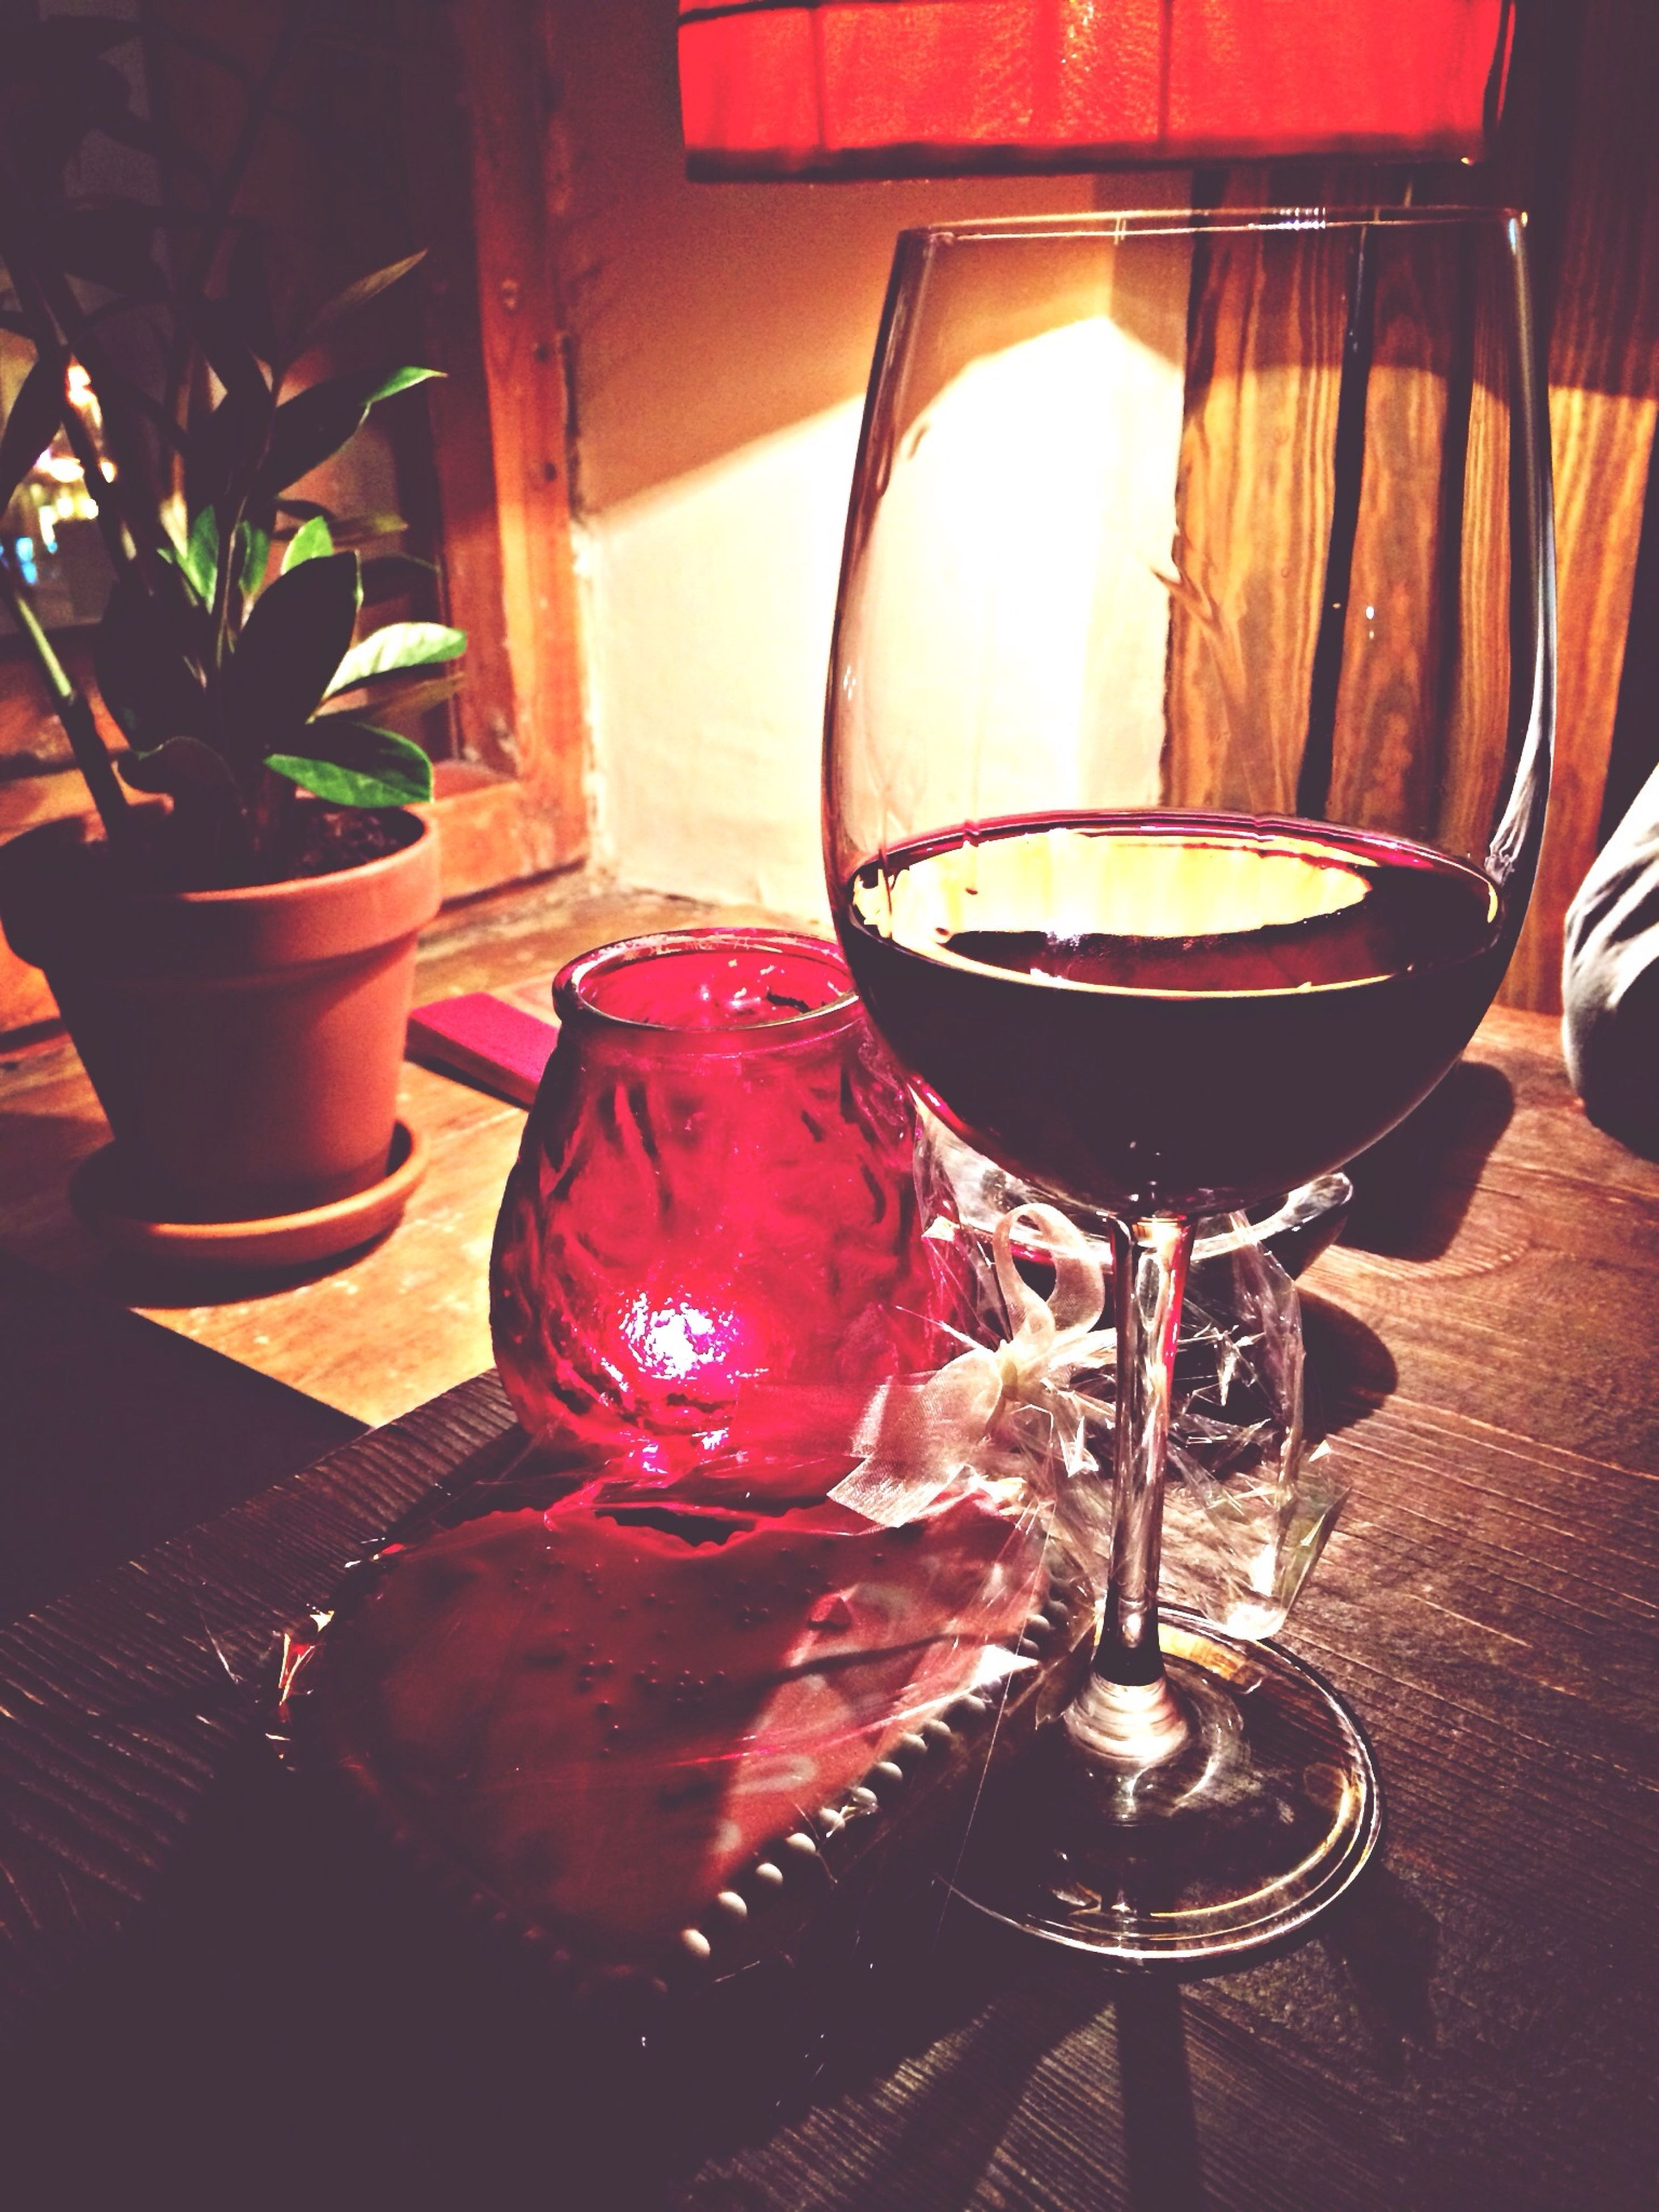 indoors, table, still life, wineglass, drink, home interior, glass - material, chair, vase, drinking glass, illuminated, close-up, food and drink, wine, restaurant, absence, no people, potted plant, place setting, red